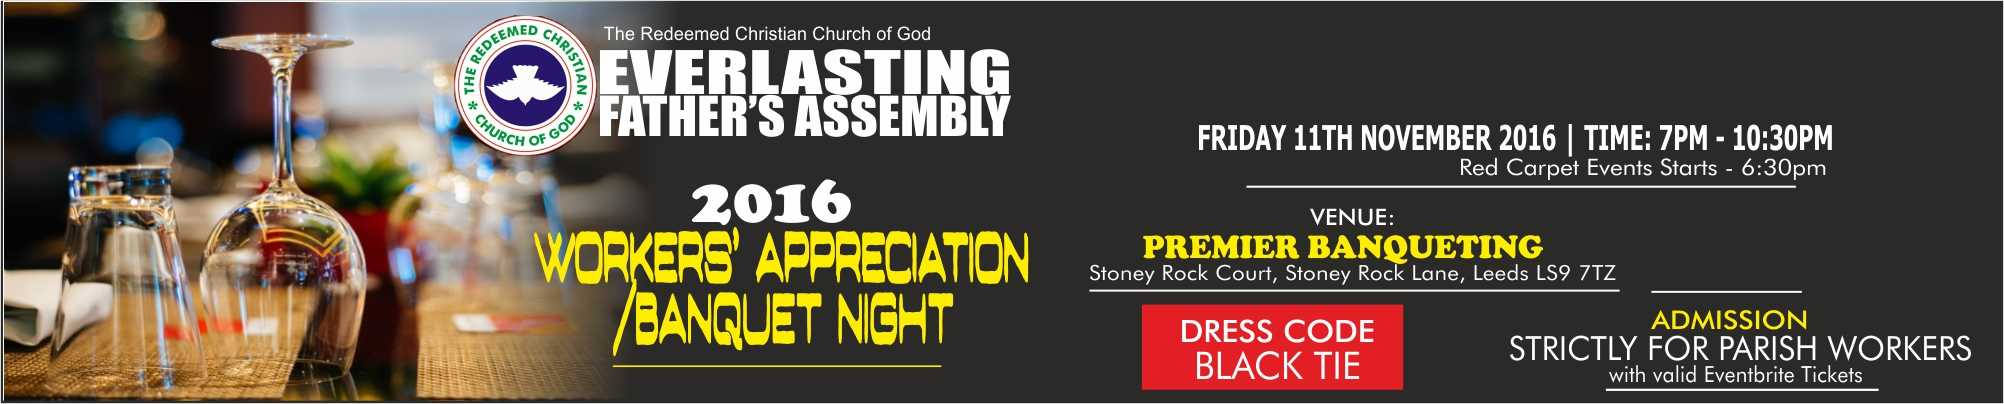 2016 RCCG EFA Leeds Workers' Appreciation/Banqueting Night